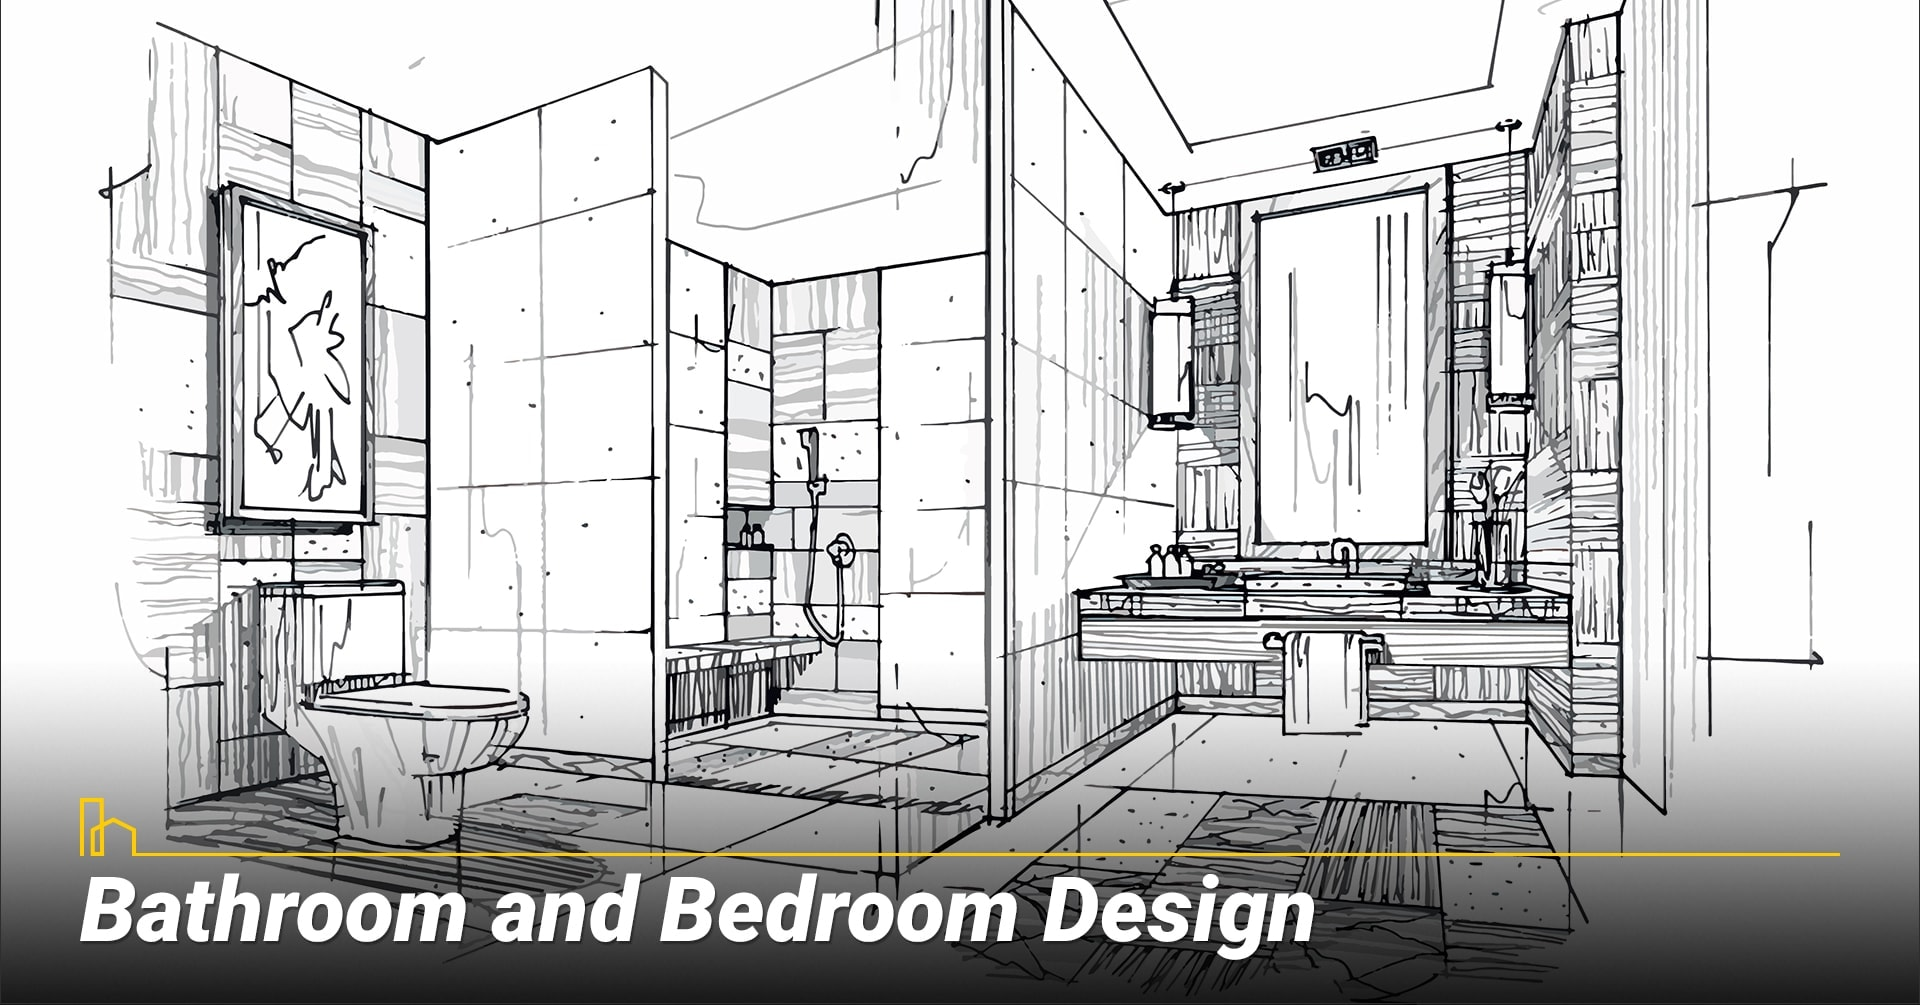 Bathroom and Bedroom Design, design your bathrooms and bedrooms